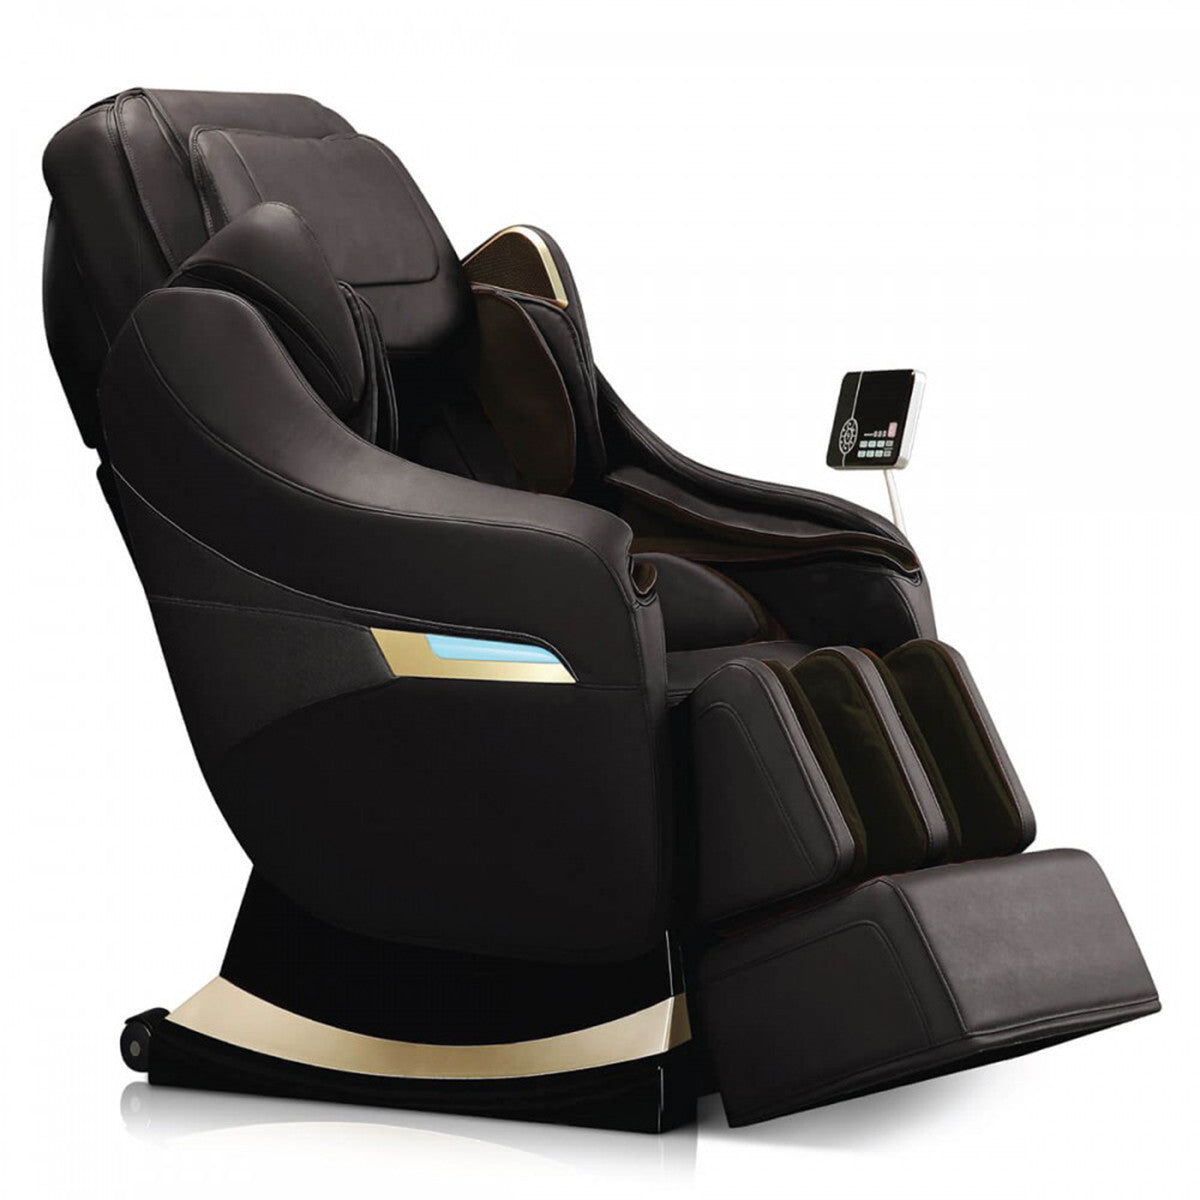 titan tp pro executive massage chair - Massage Chair For Sale